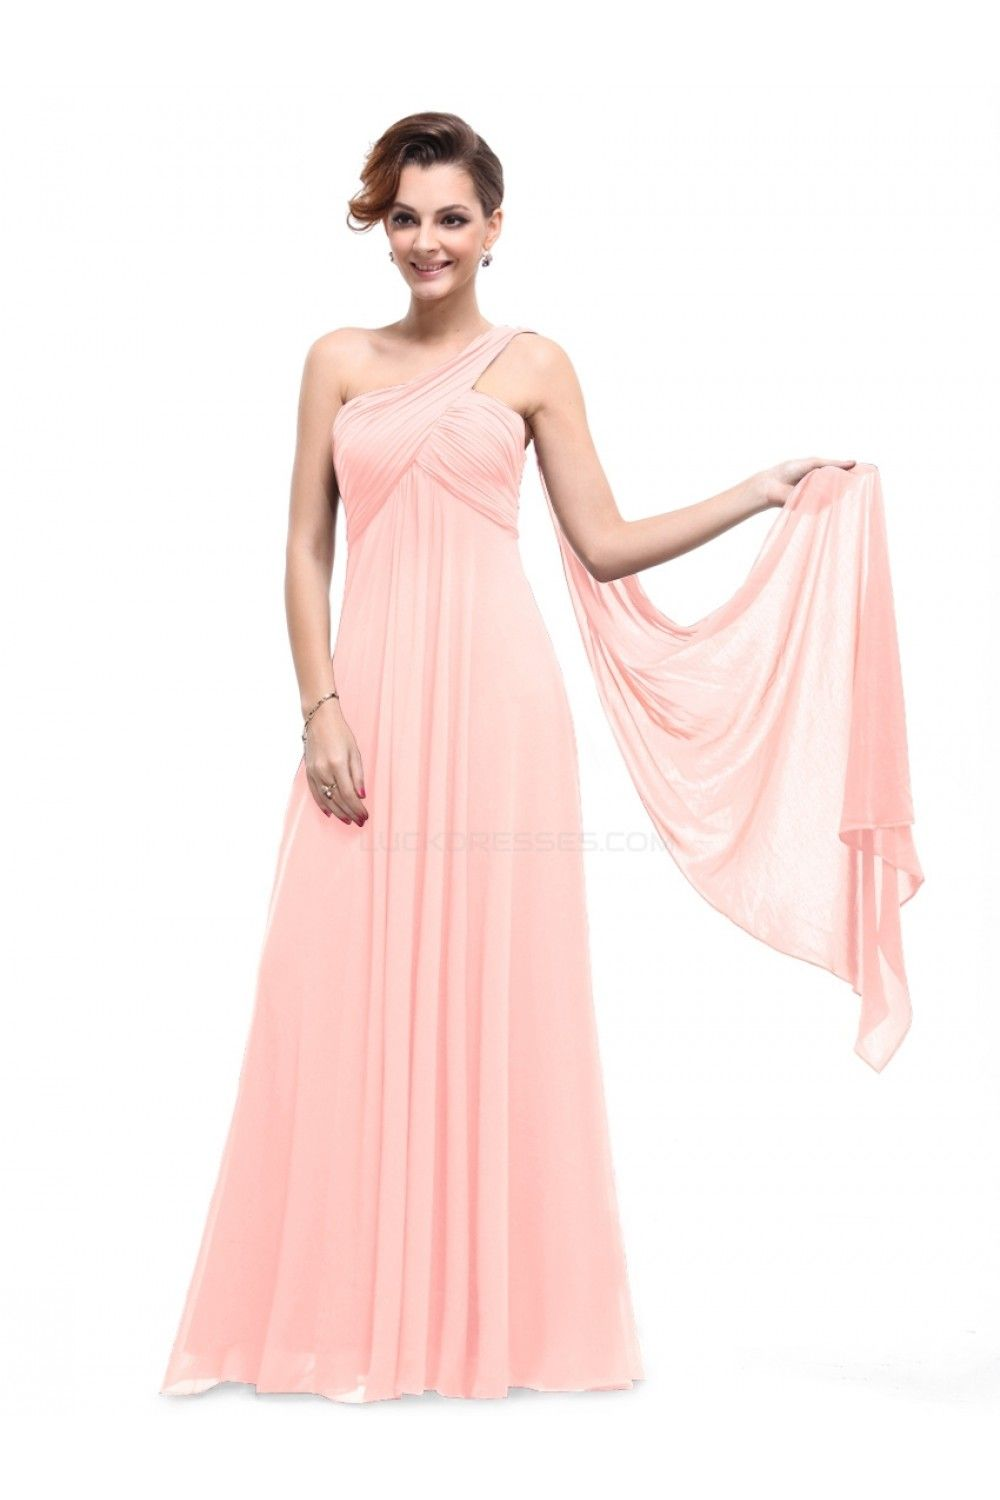 Empire one shoulder long pink chiffon bridesmaid dressesevening empire one shoulder long pink chiffon bridesmaid dressesevening dressesmaternity dresses bd010294 ombrellifo Choice Image